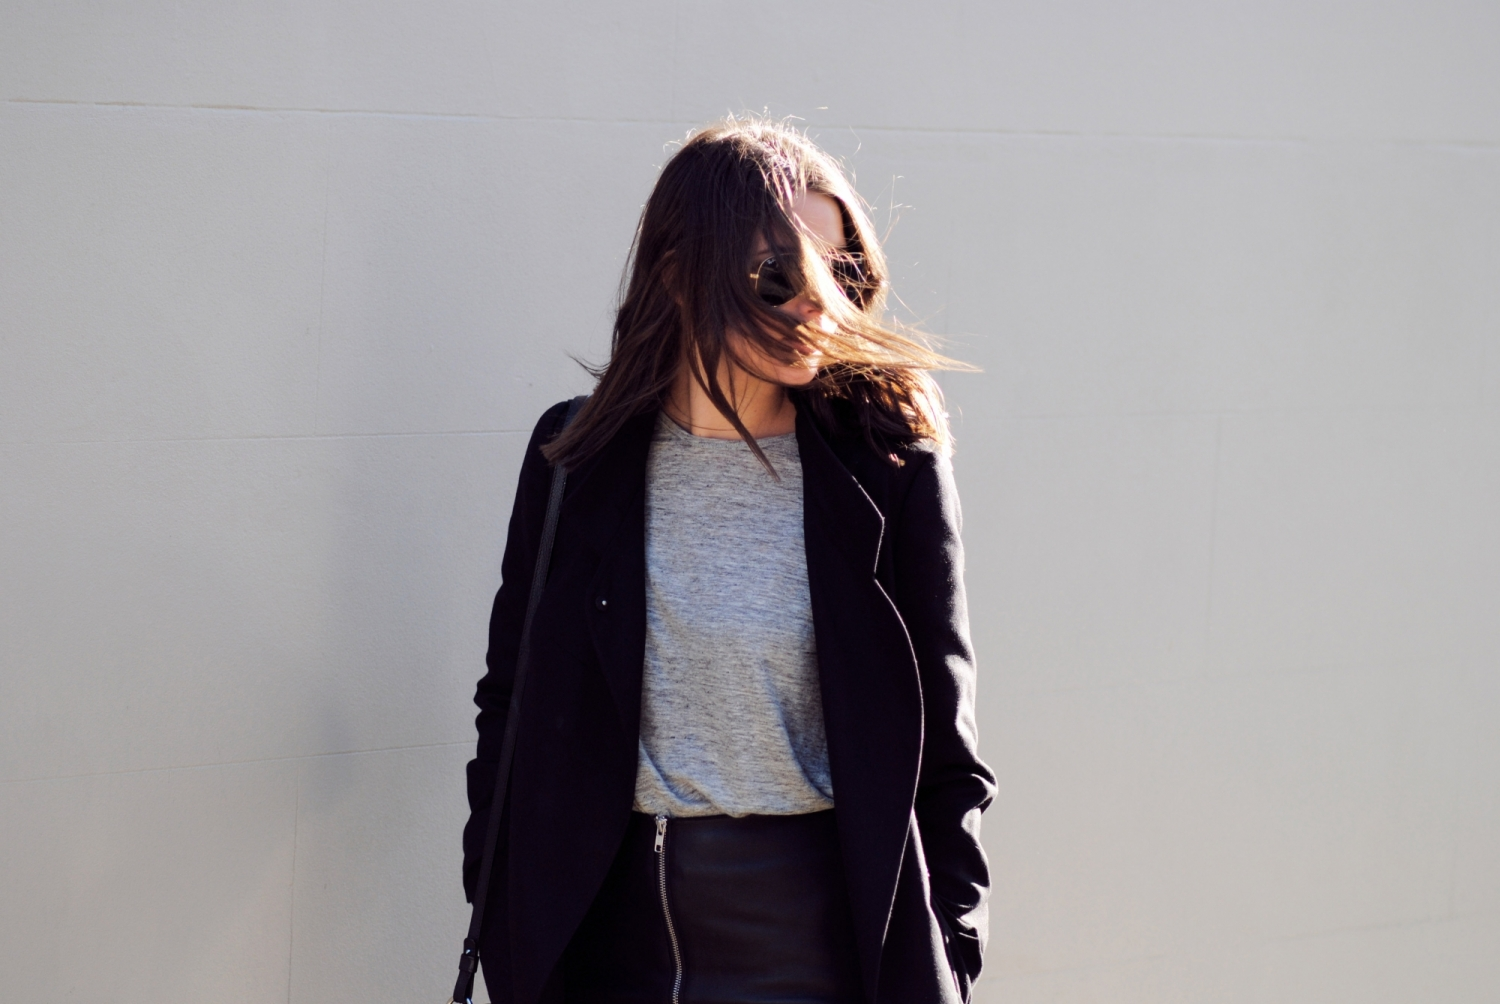 harper and harley_coat_leather skirt_winter outfit_04